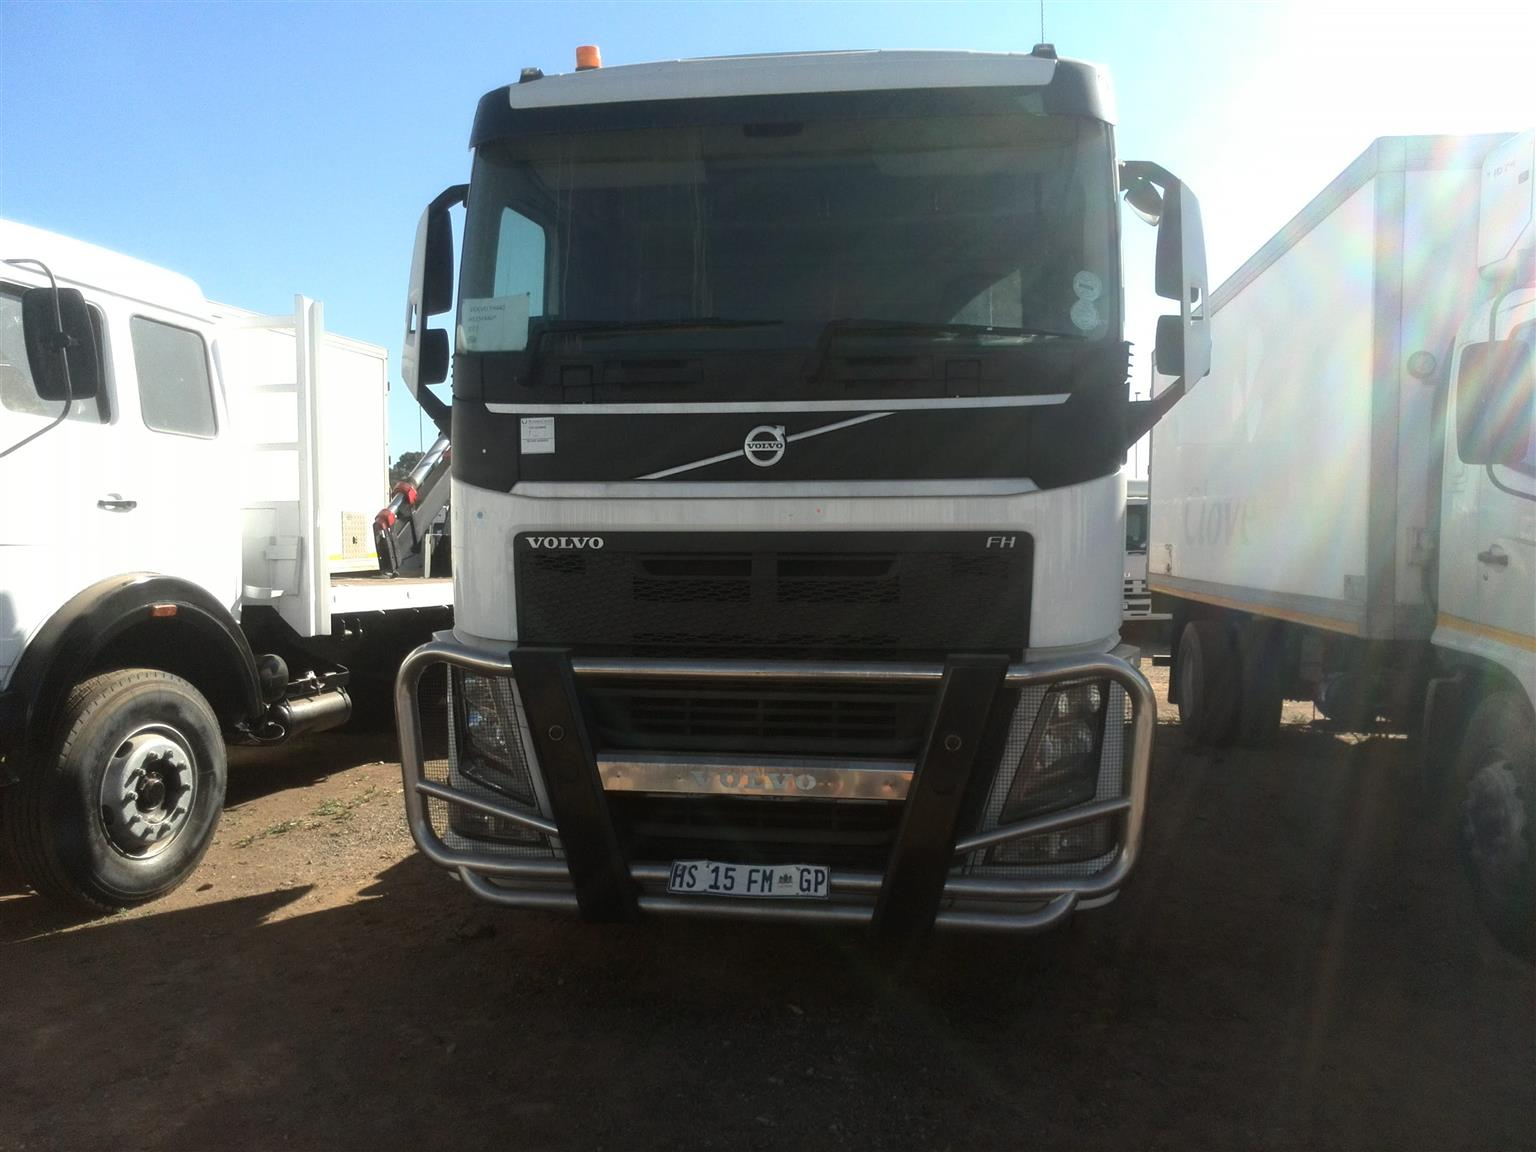 2015 - VOLVO HORSE mint condition posted by Zunaid Abdool UBUNTU Truck sales